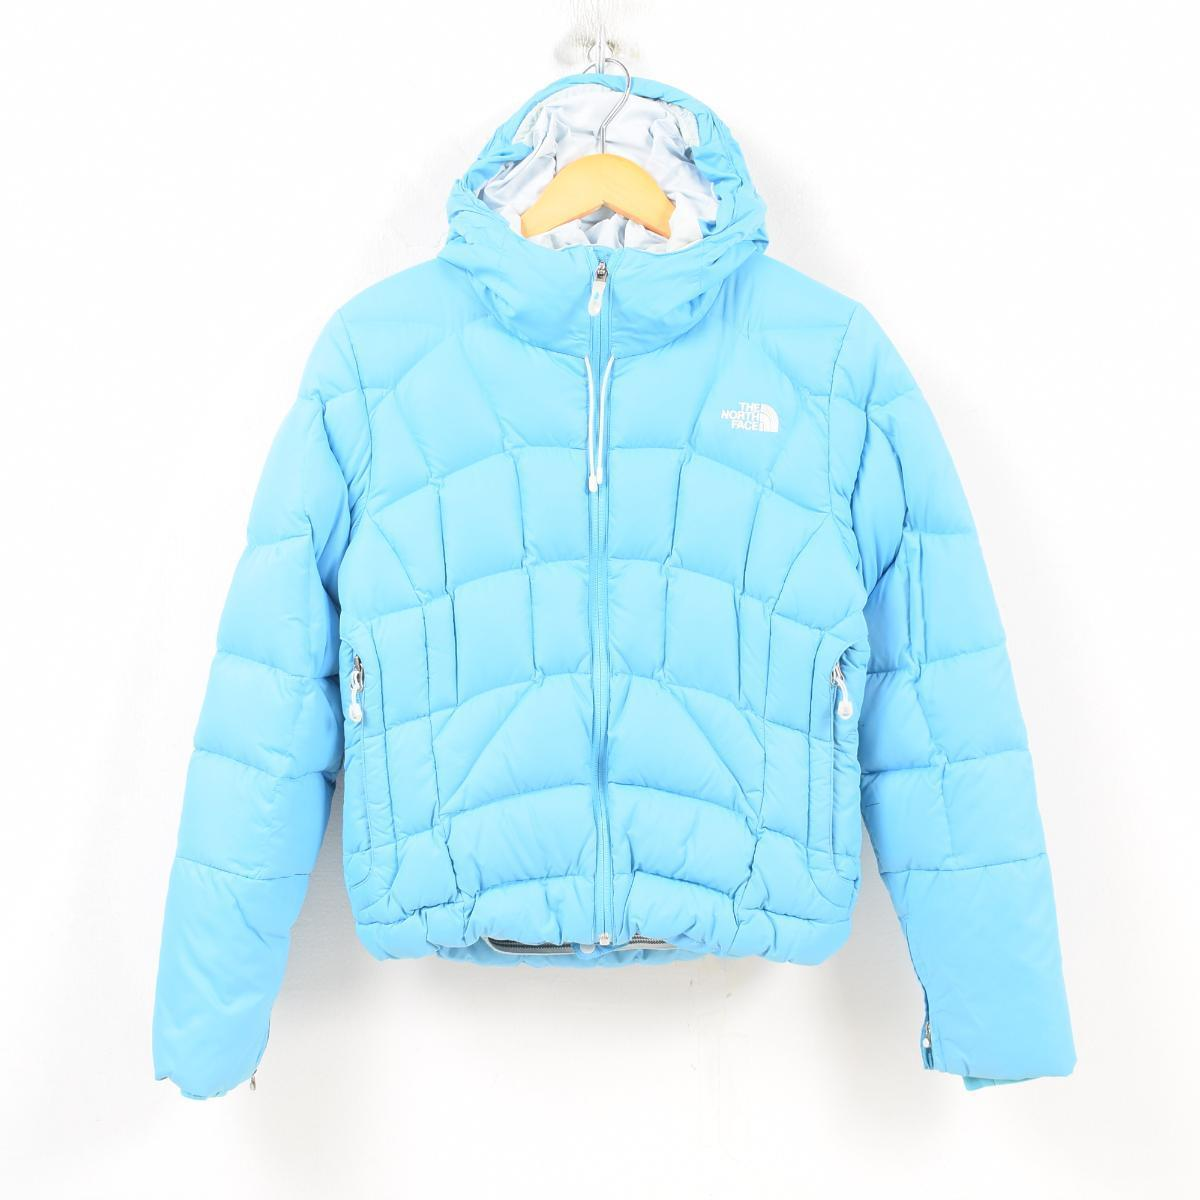 921e0fad8 Down jacket Lady's S /wax4908 with the the North Face THE NORTH FACE 600  Phil power food